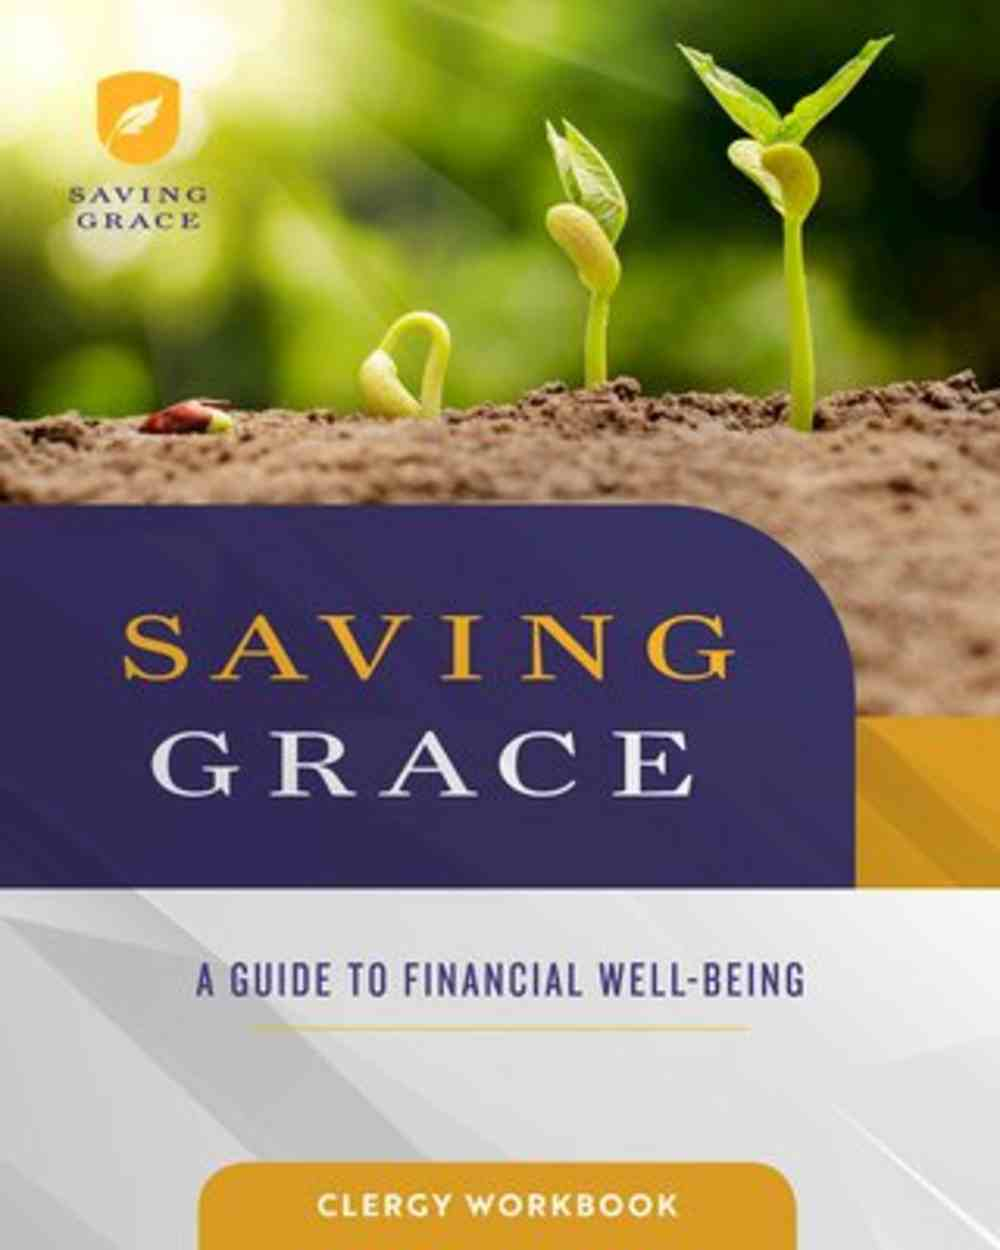 Saving Grace: A Guide to Financial Well-Being (Clergy Workbook) Paperback